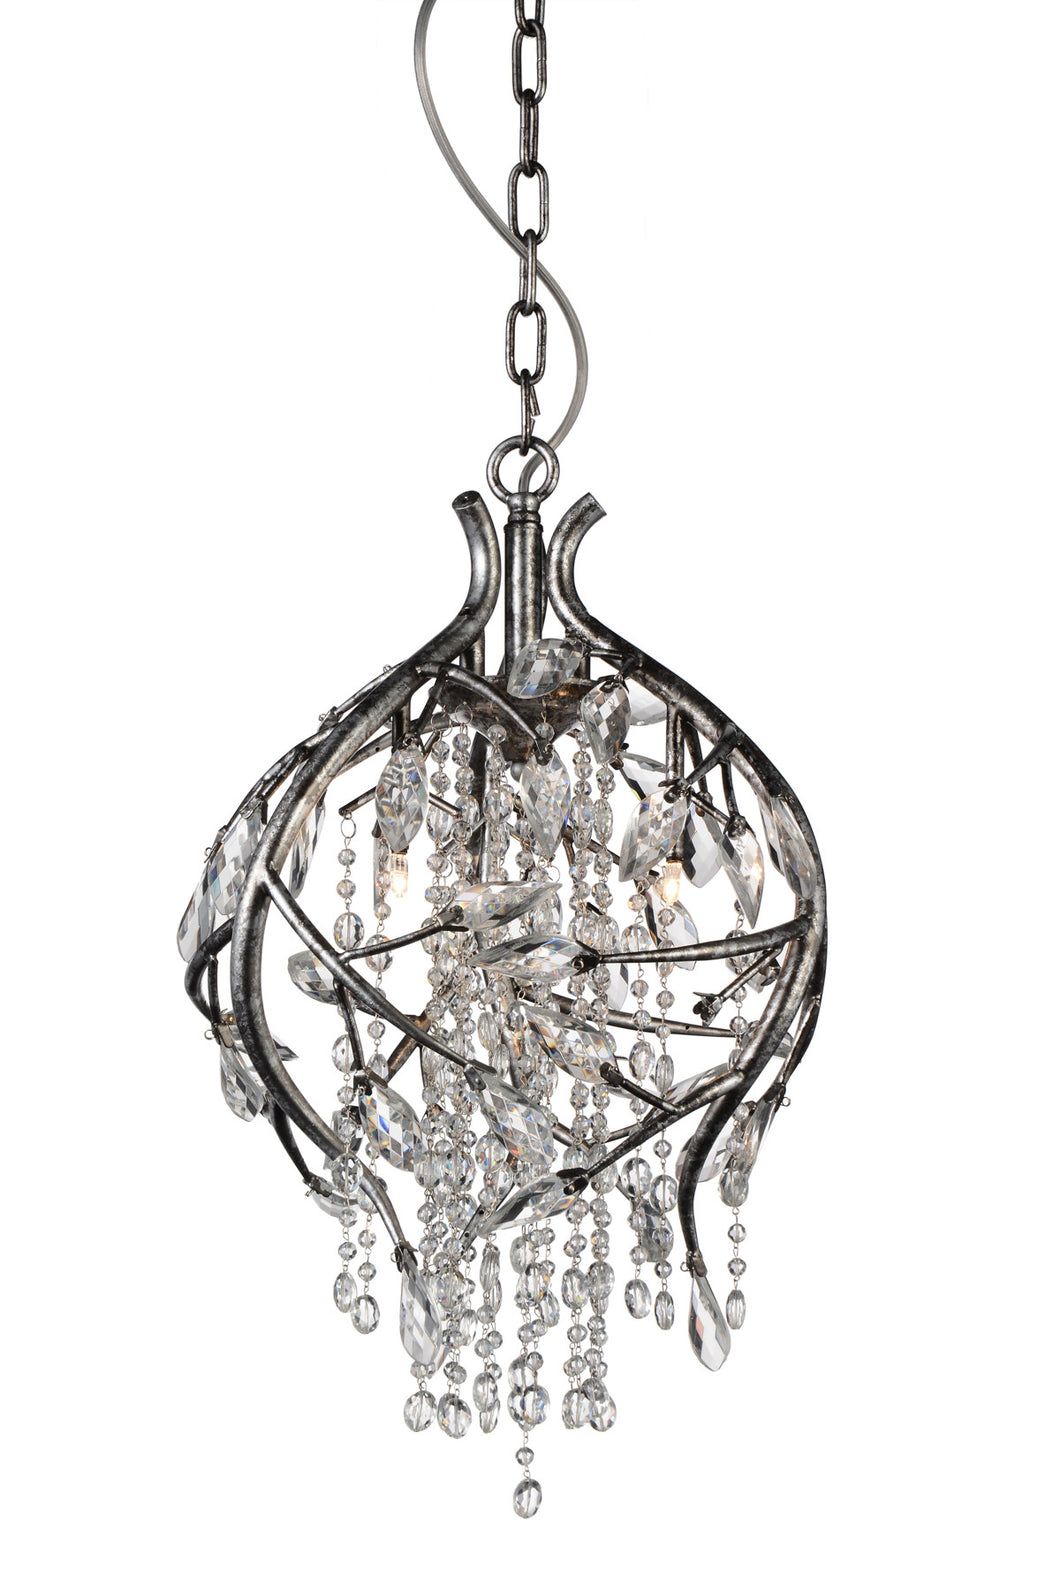 3 Light Down Chandelier with Speckled Nickel finish